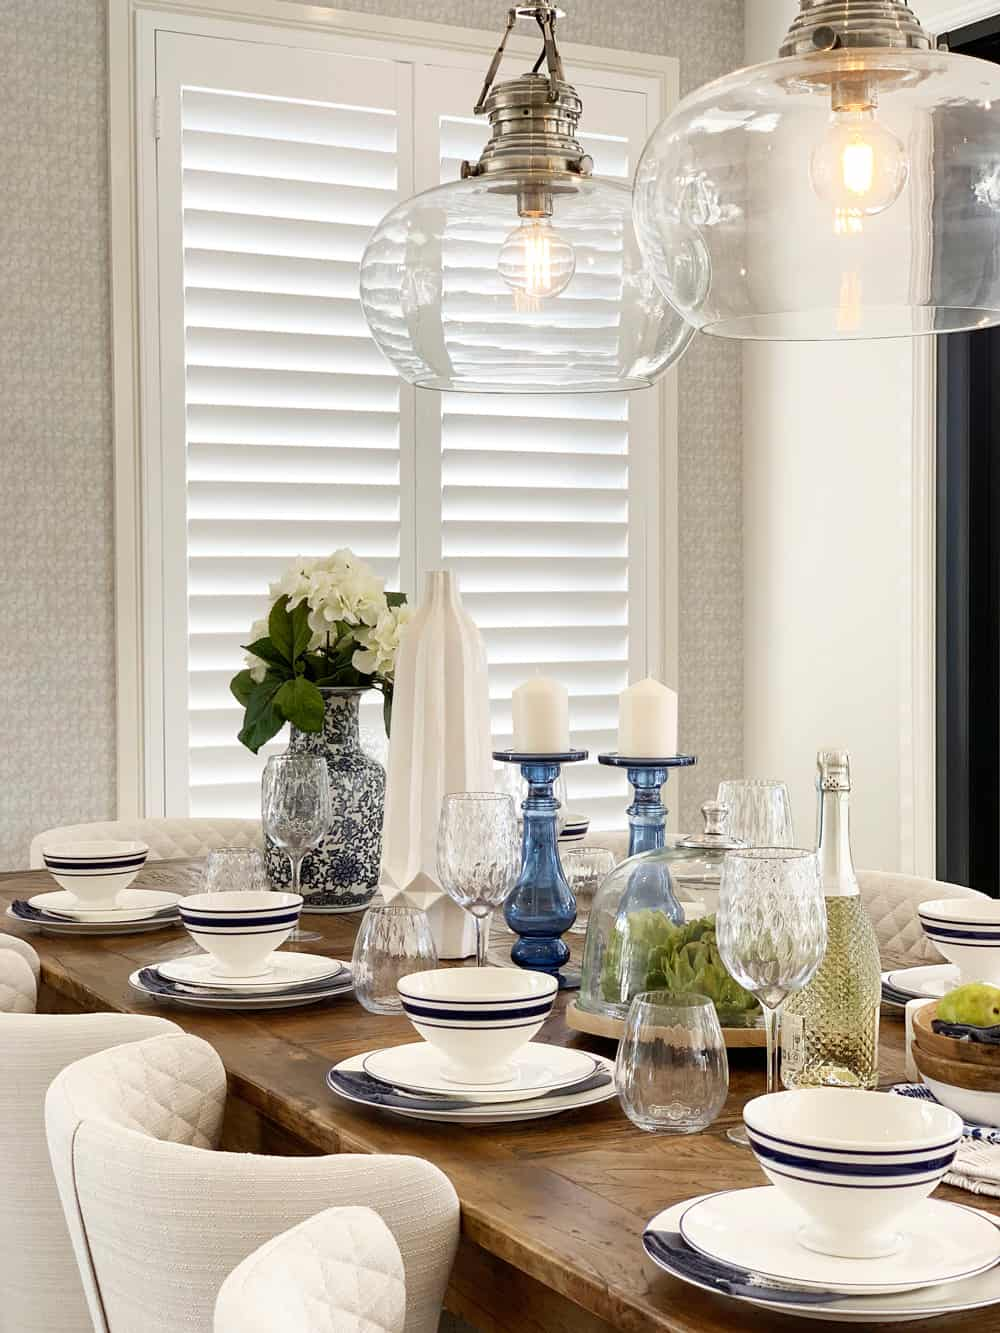 Newport-Shutters-Blinds-Hamptons